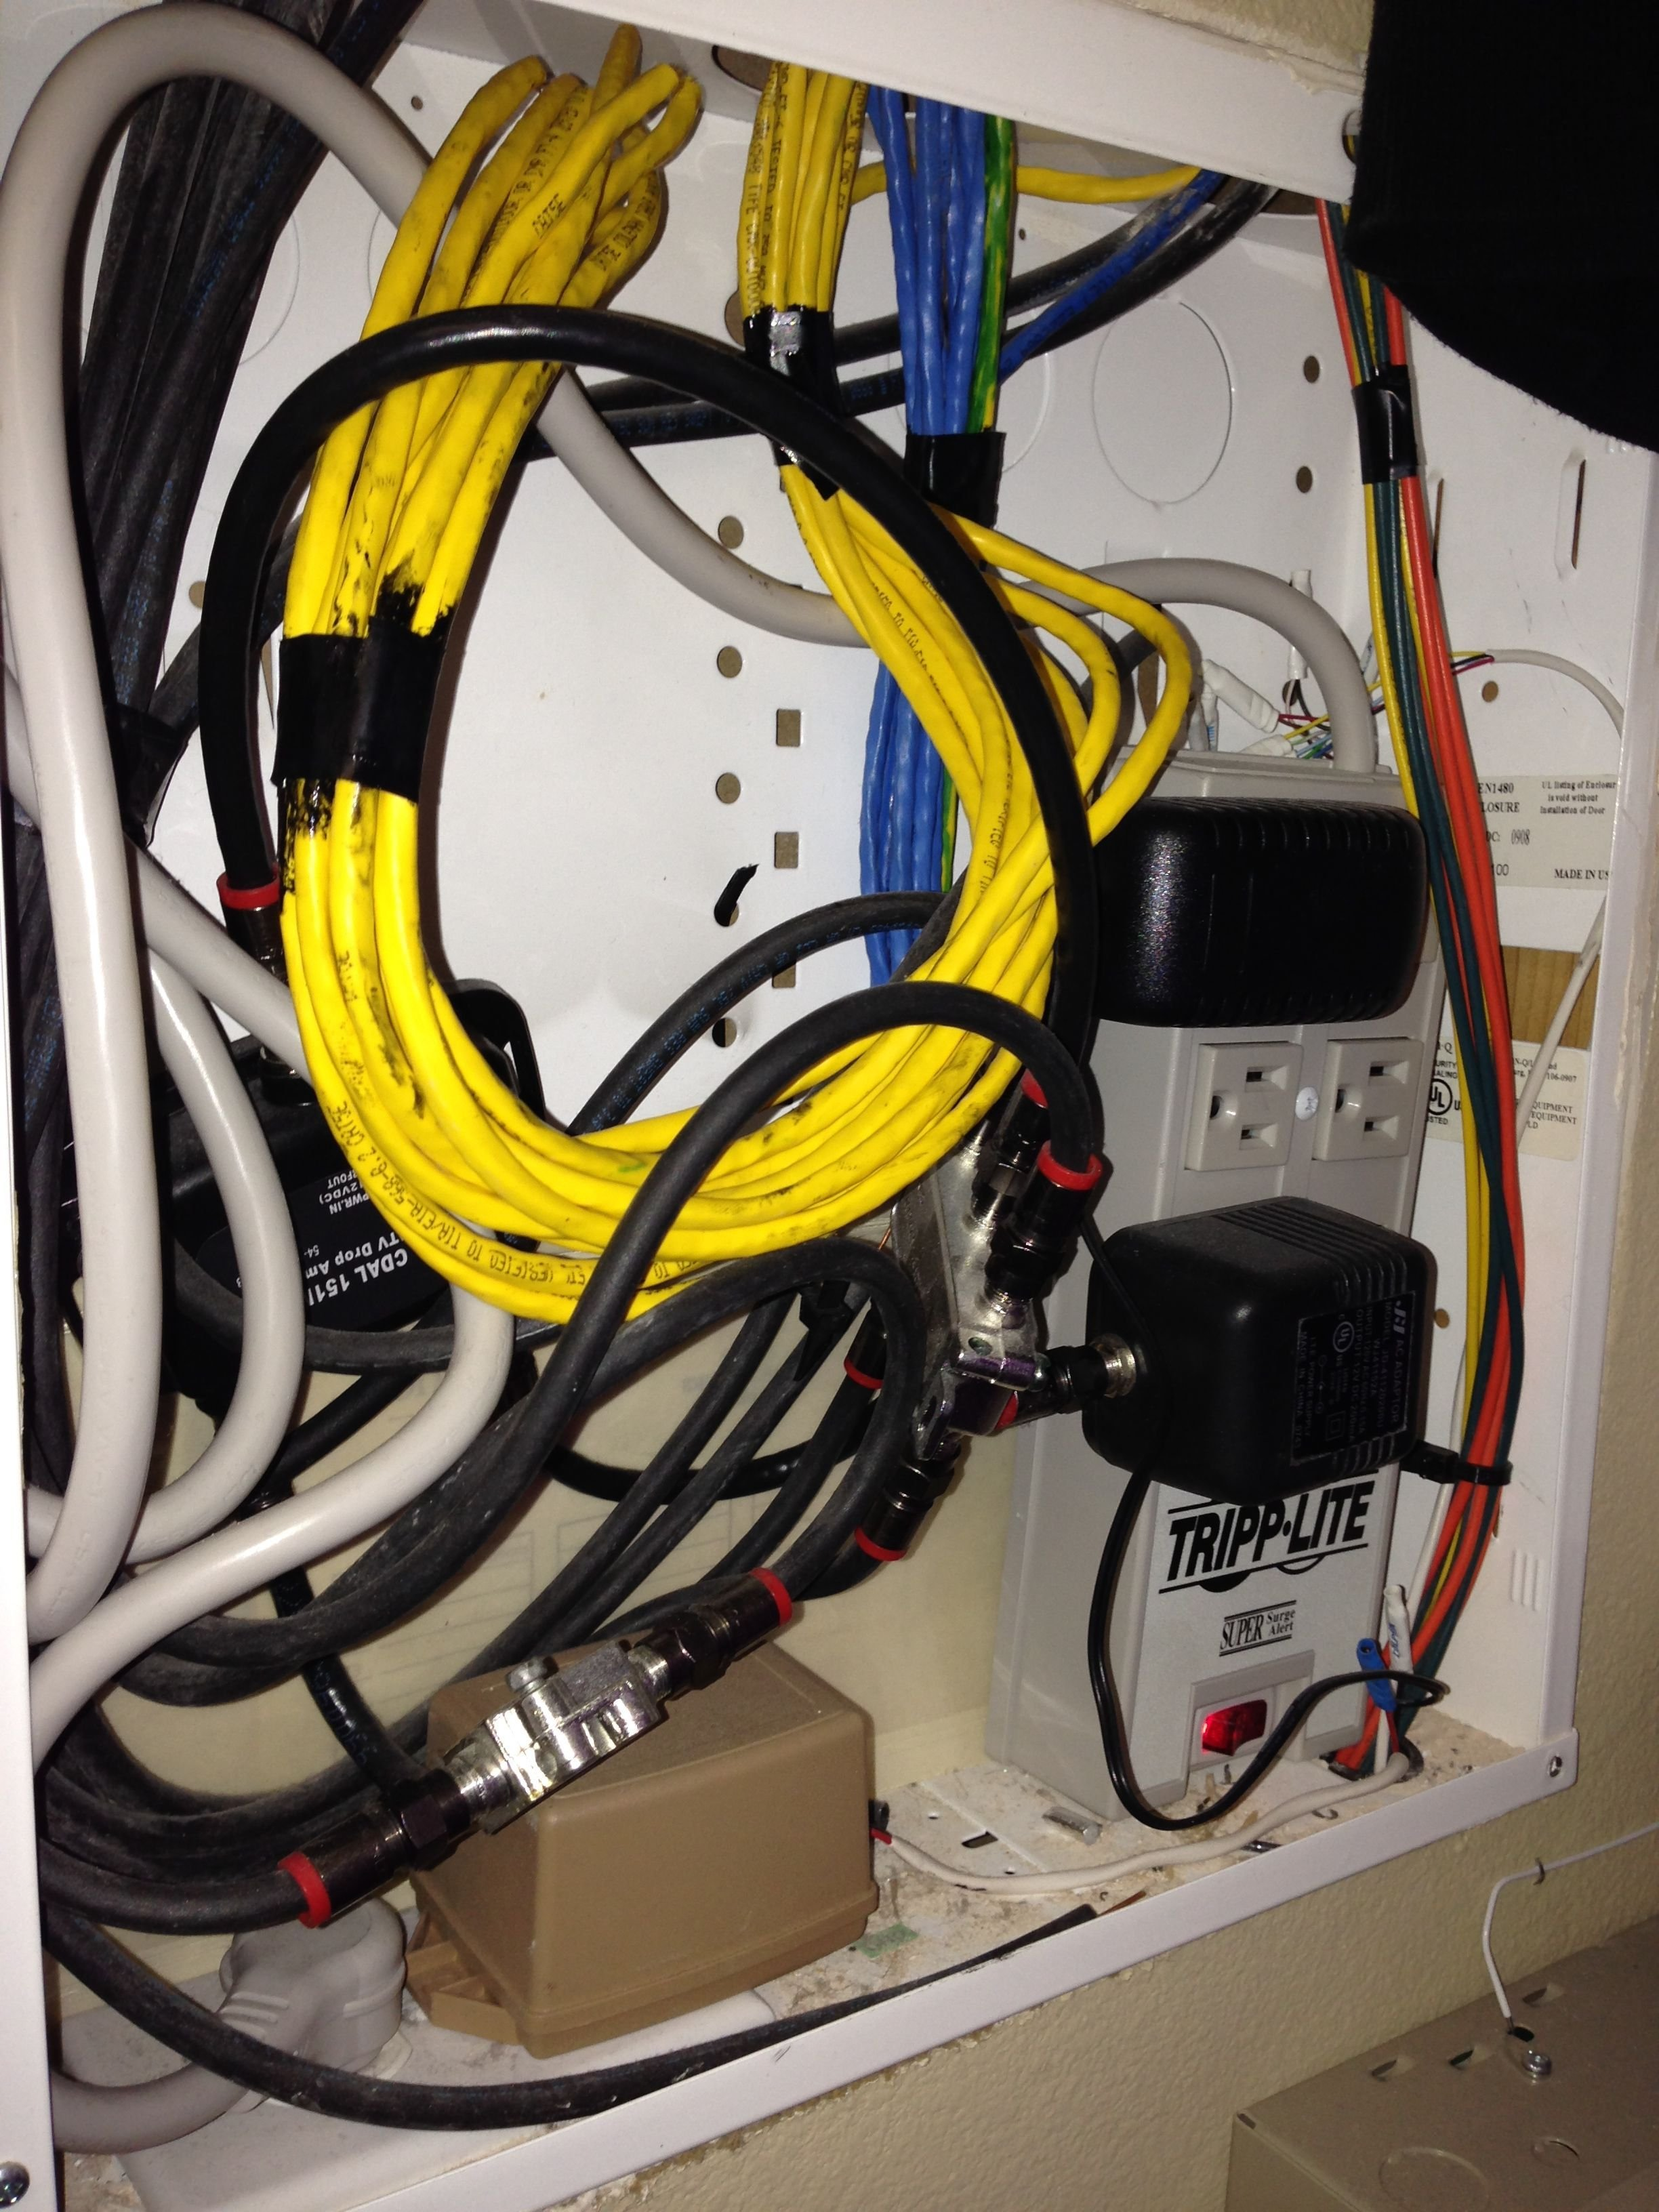 On Q Home System Totally Confused And Need Help Page 2 Avs High Performance Power Over Ethernet Injector By Legrand The Yellow Cat5 Cables Are Not Terminated Anything They Just Cut Off It Sounds Like I To Get This 8 Port Network Interface Module